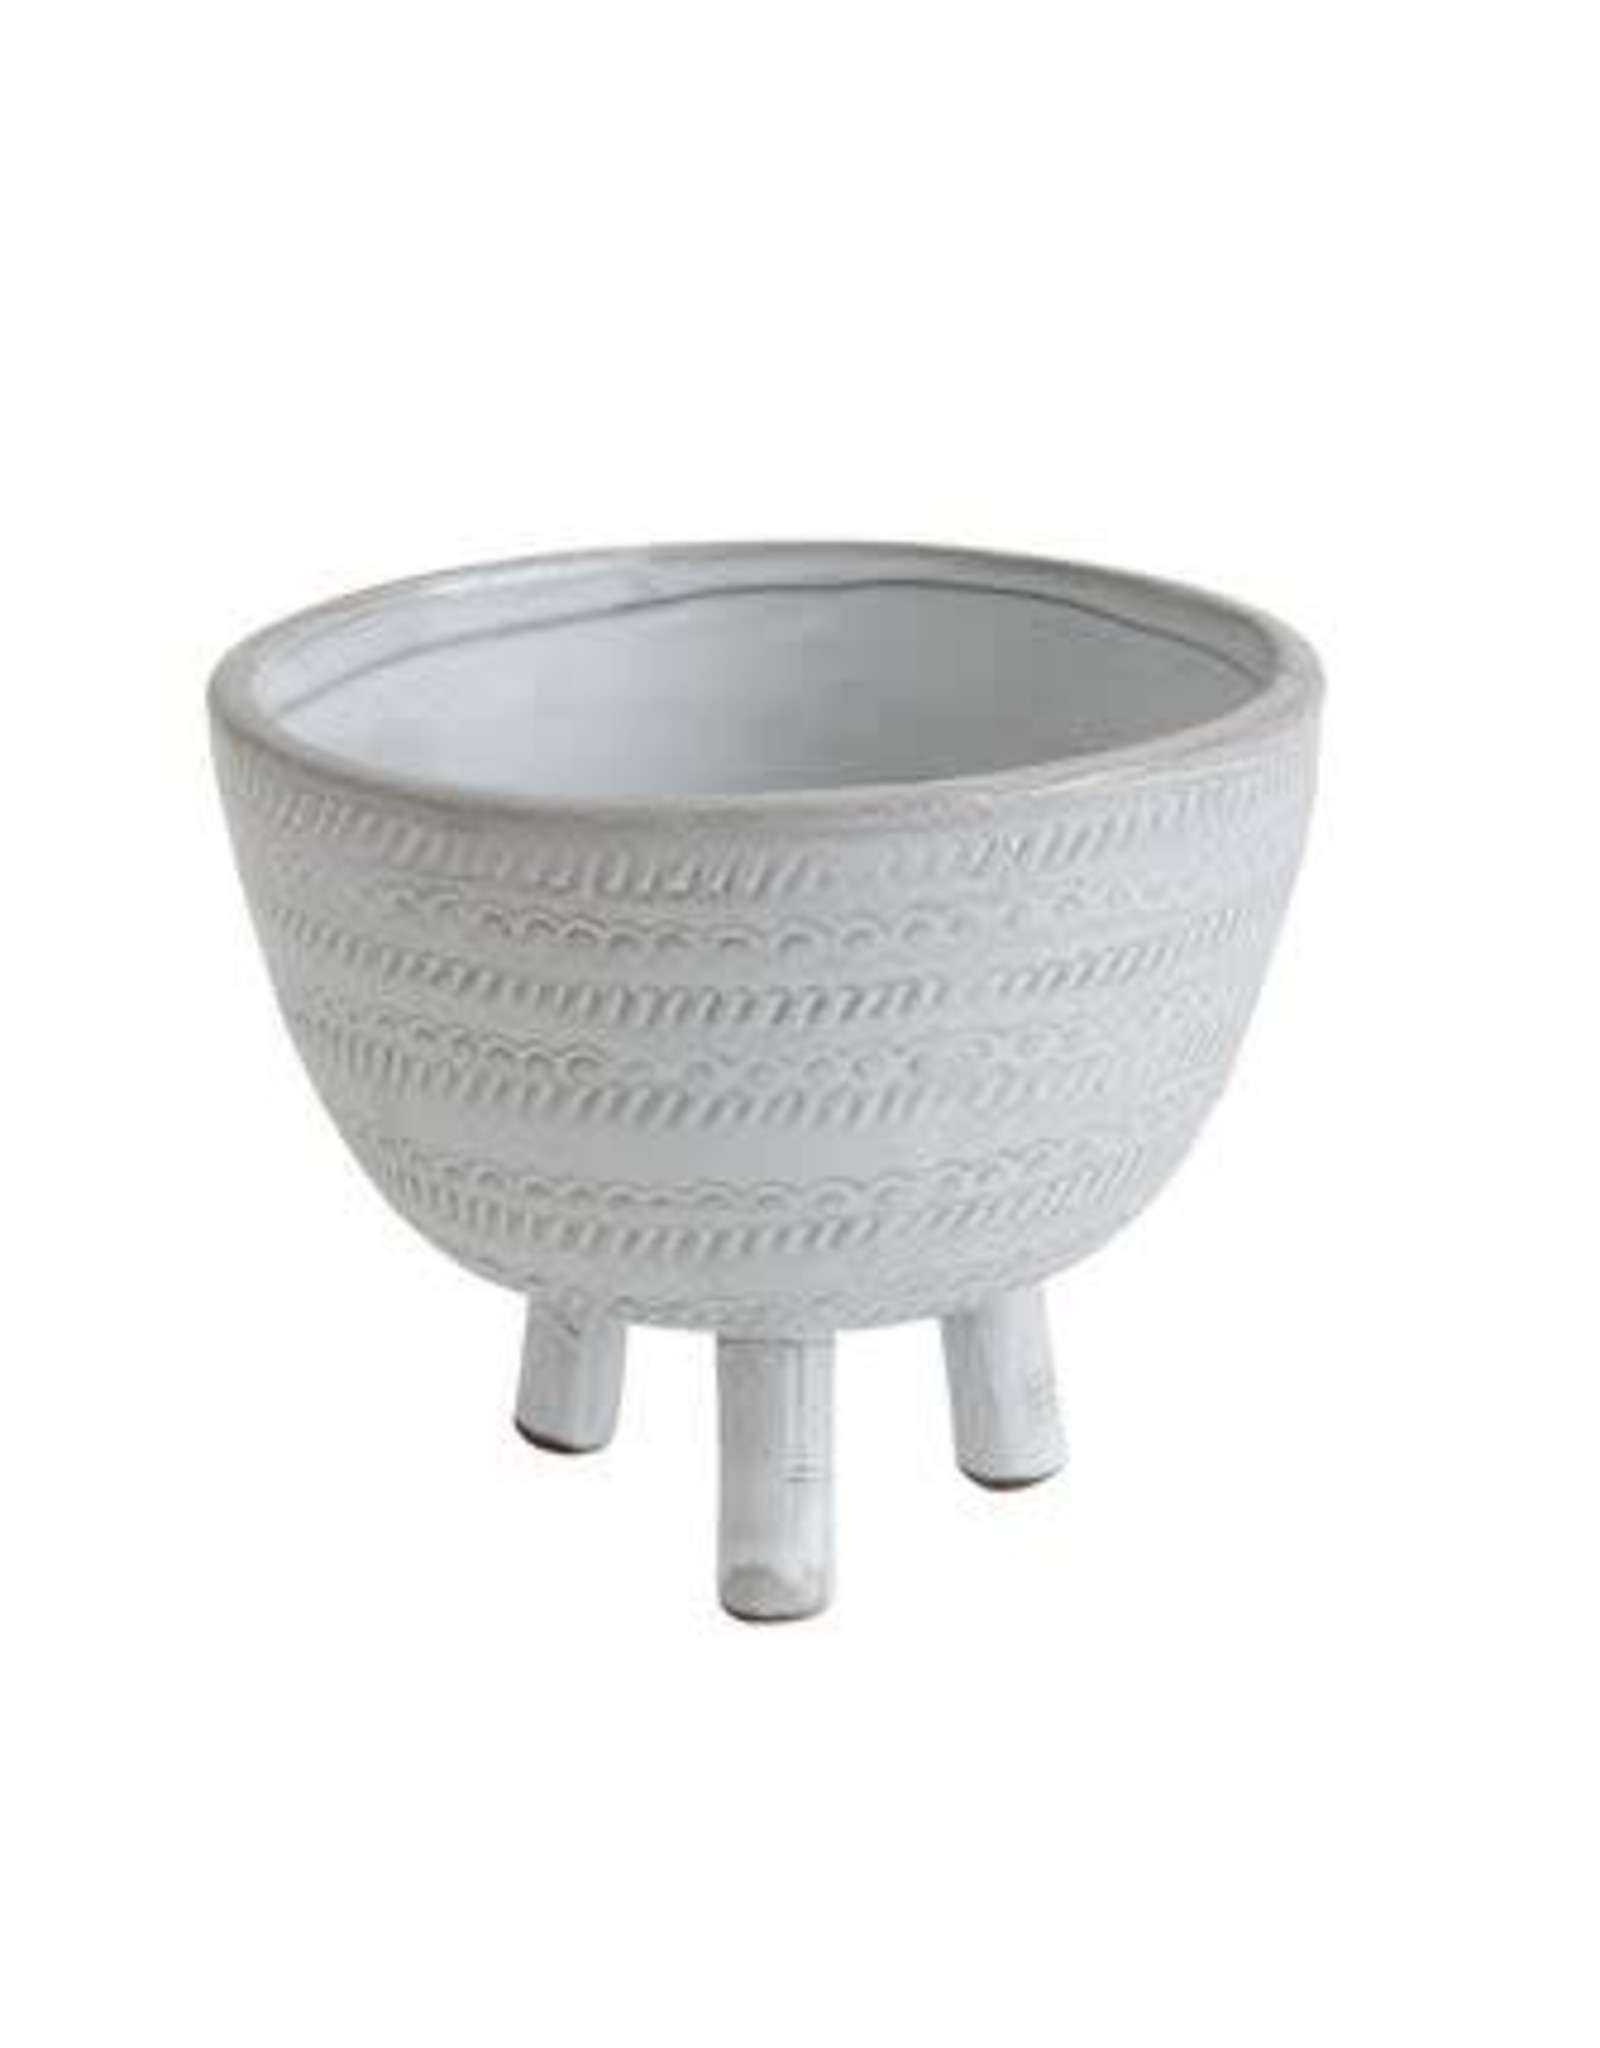 Footed Terracotta Bowl